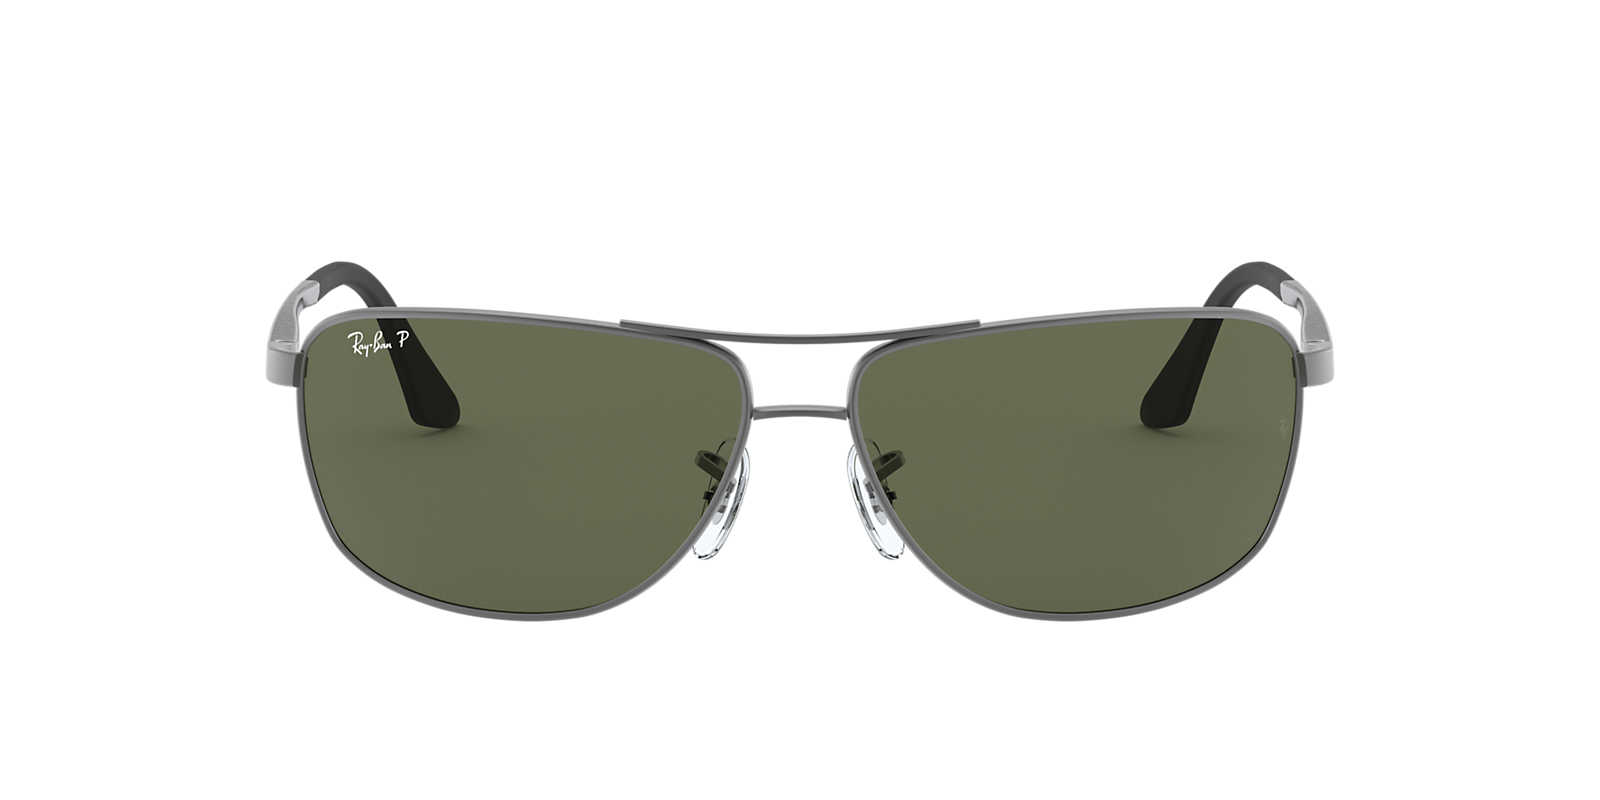 ray ban glass scratch repair  ray ban gunmetal matte rb3506 64 green polarized lenses 64mm